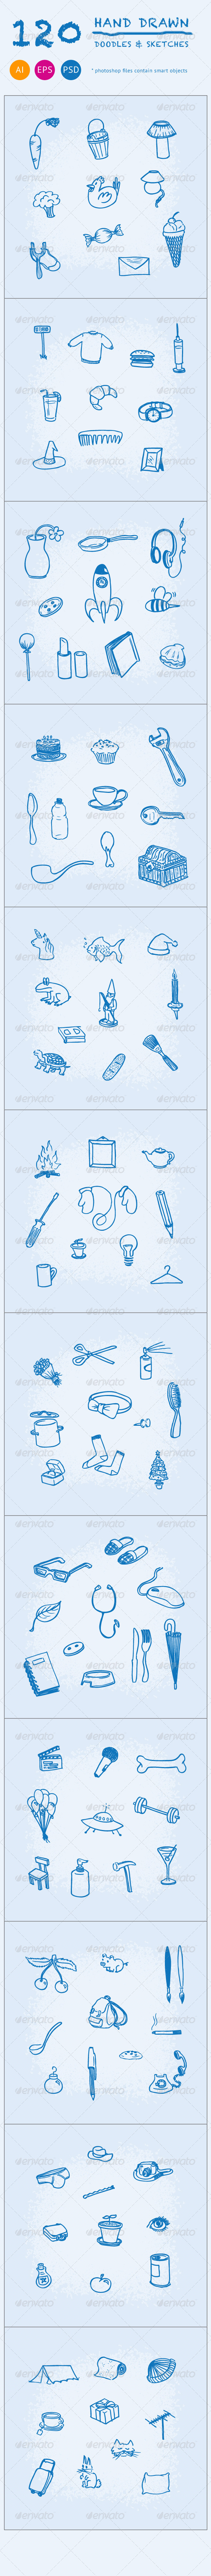 GraphicRiver 120 Hand Drawn Doodles and Sketches 4445914